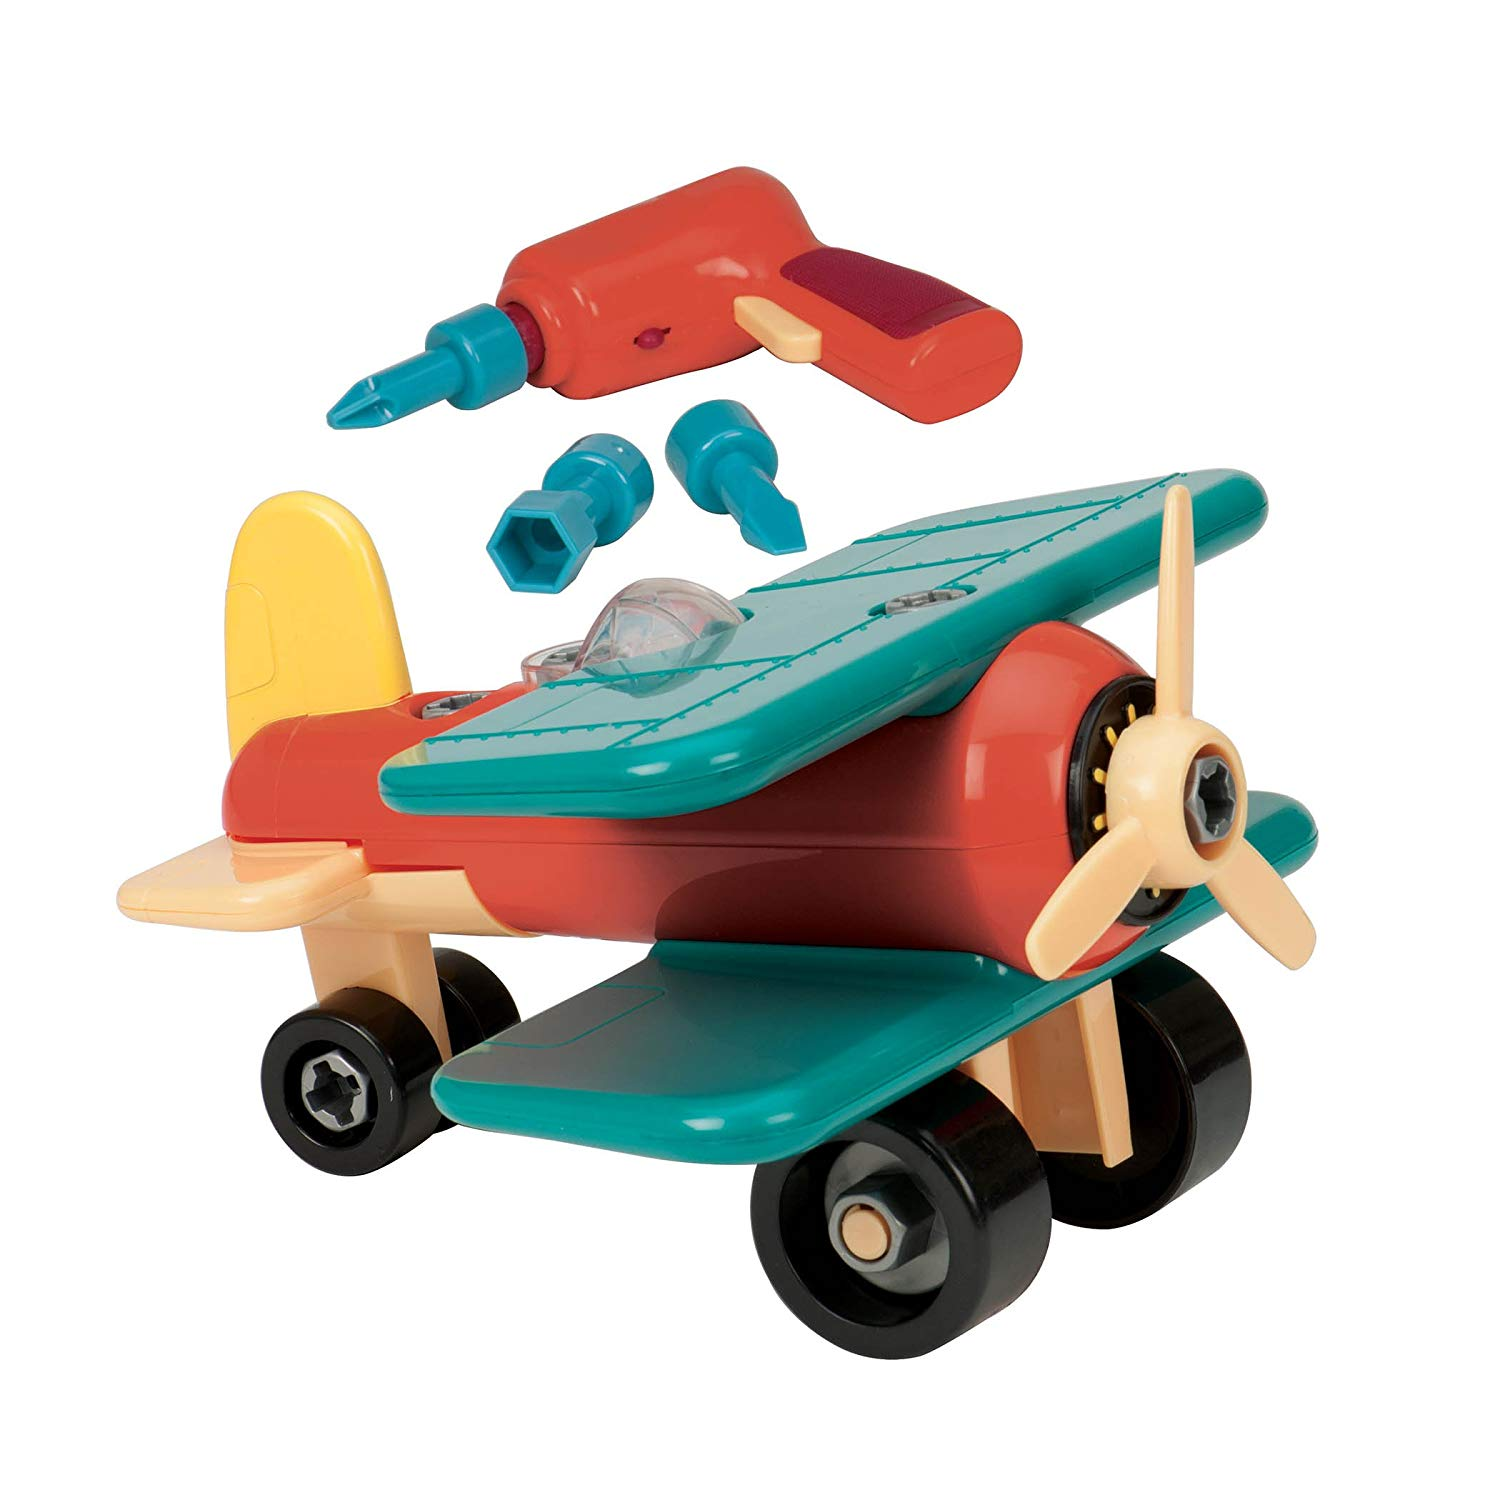 Take-A-Part Airplane - Best Toys  for 3 Year Old Boy